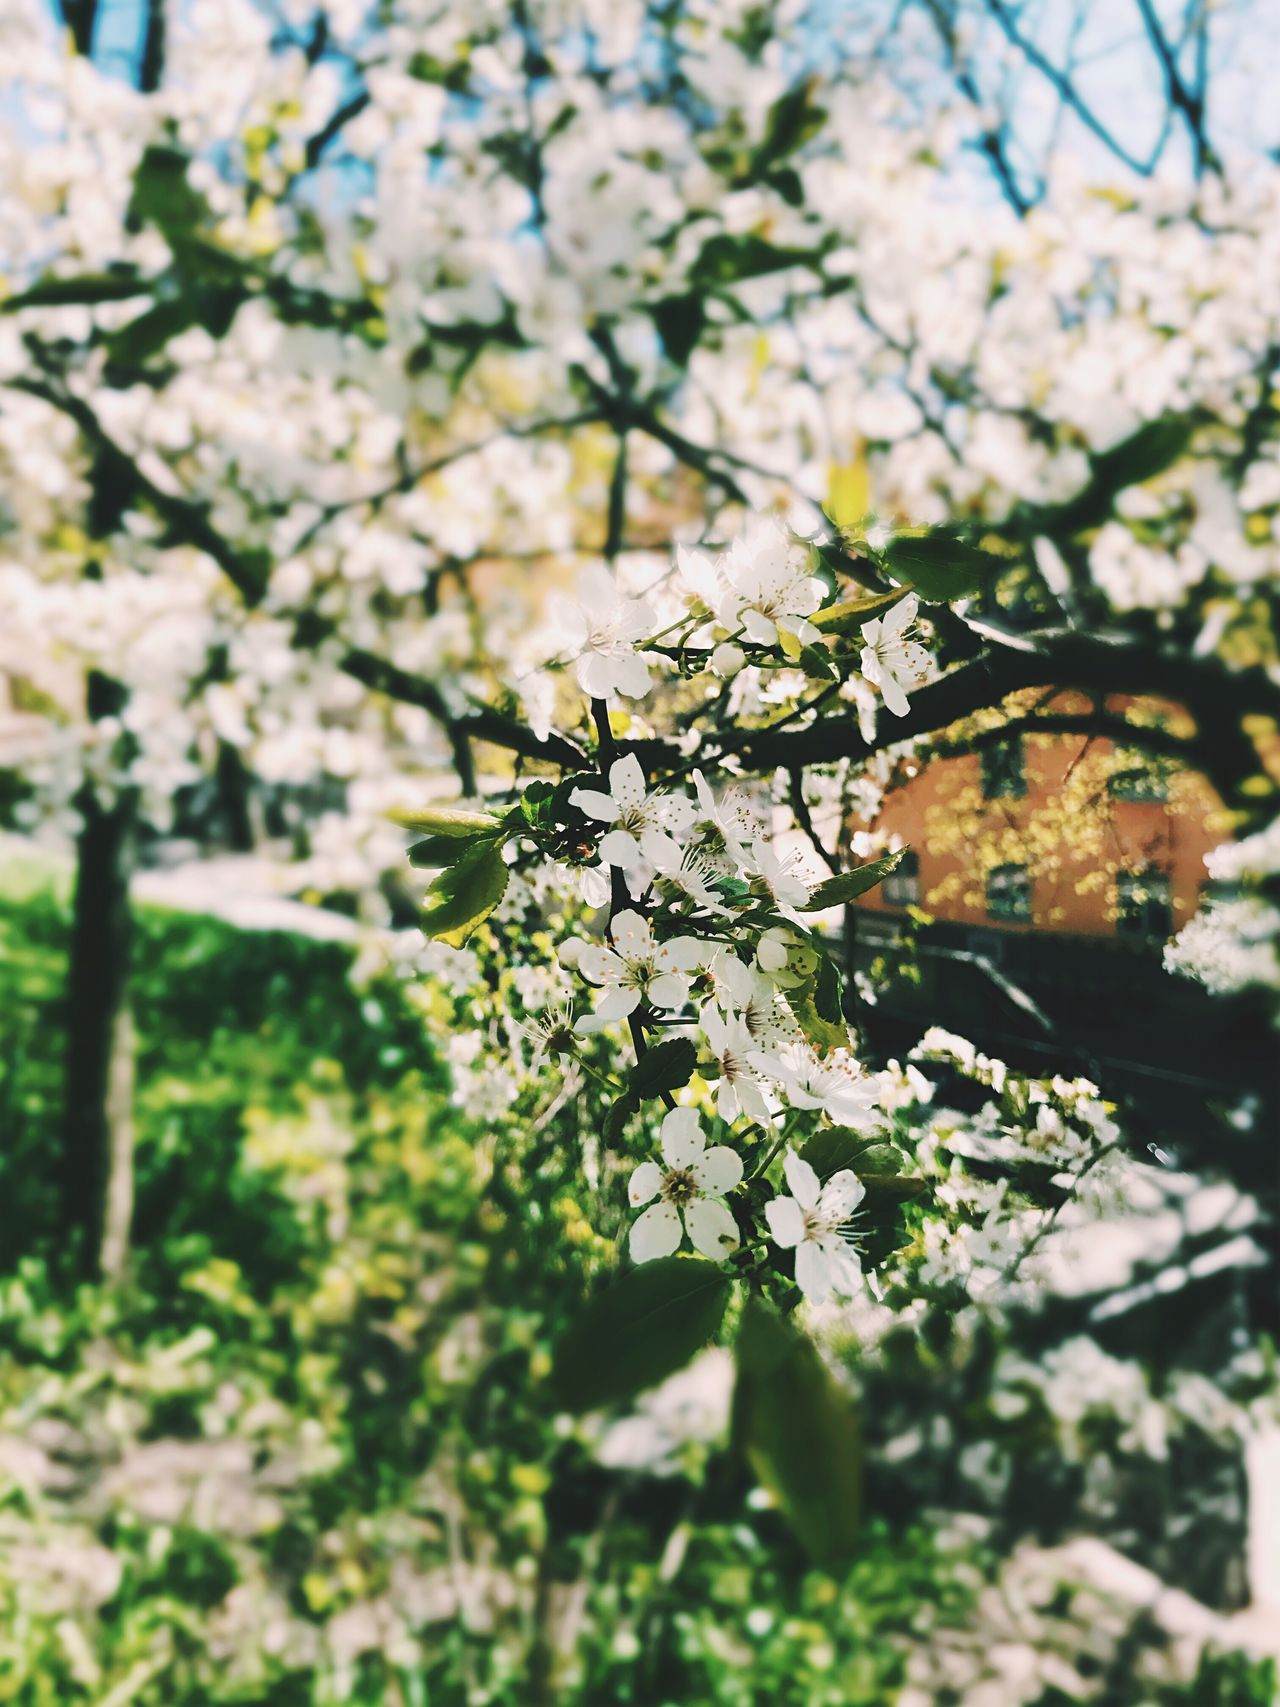 Spring is coming! Flower Blossom Apple Blossom Fragility Growth Springtime Nature White Color Tree Branch Apple Tree Beauty In Nature No People Freshness Orchard Botany Day Outdoors Close-up Blooming